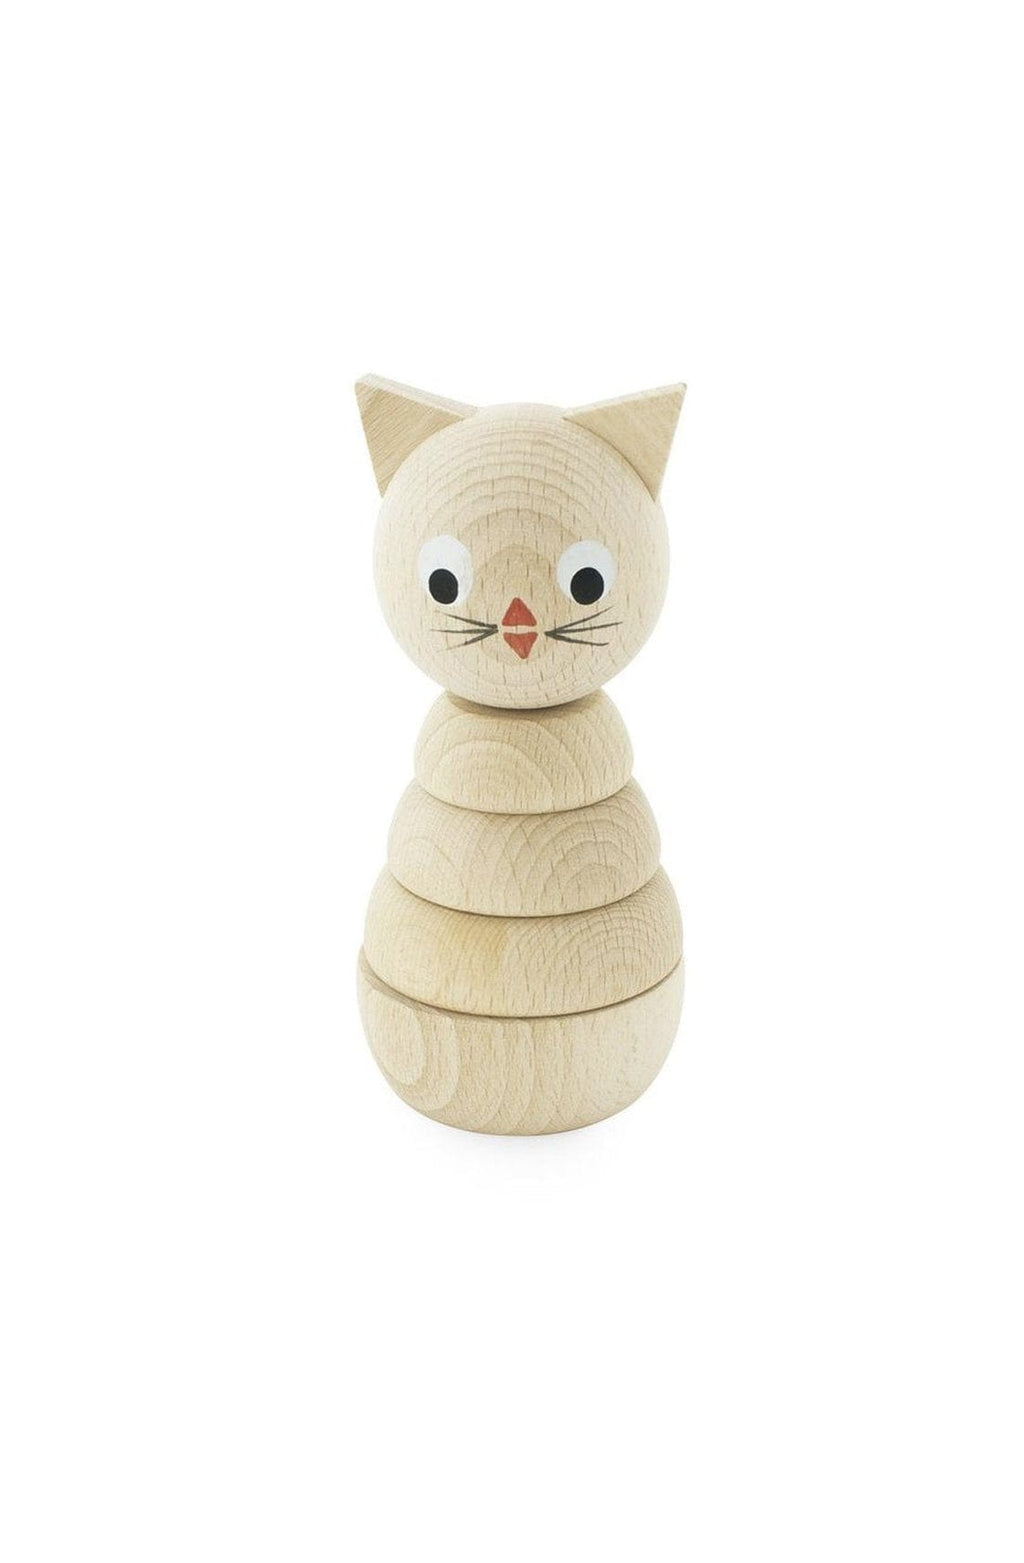 Miva Vacov Wooden Stacking Puzzle, Cat - Hello Little Birdie